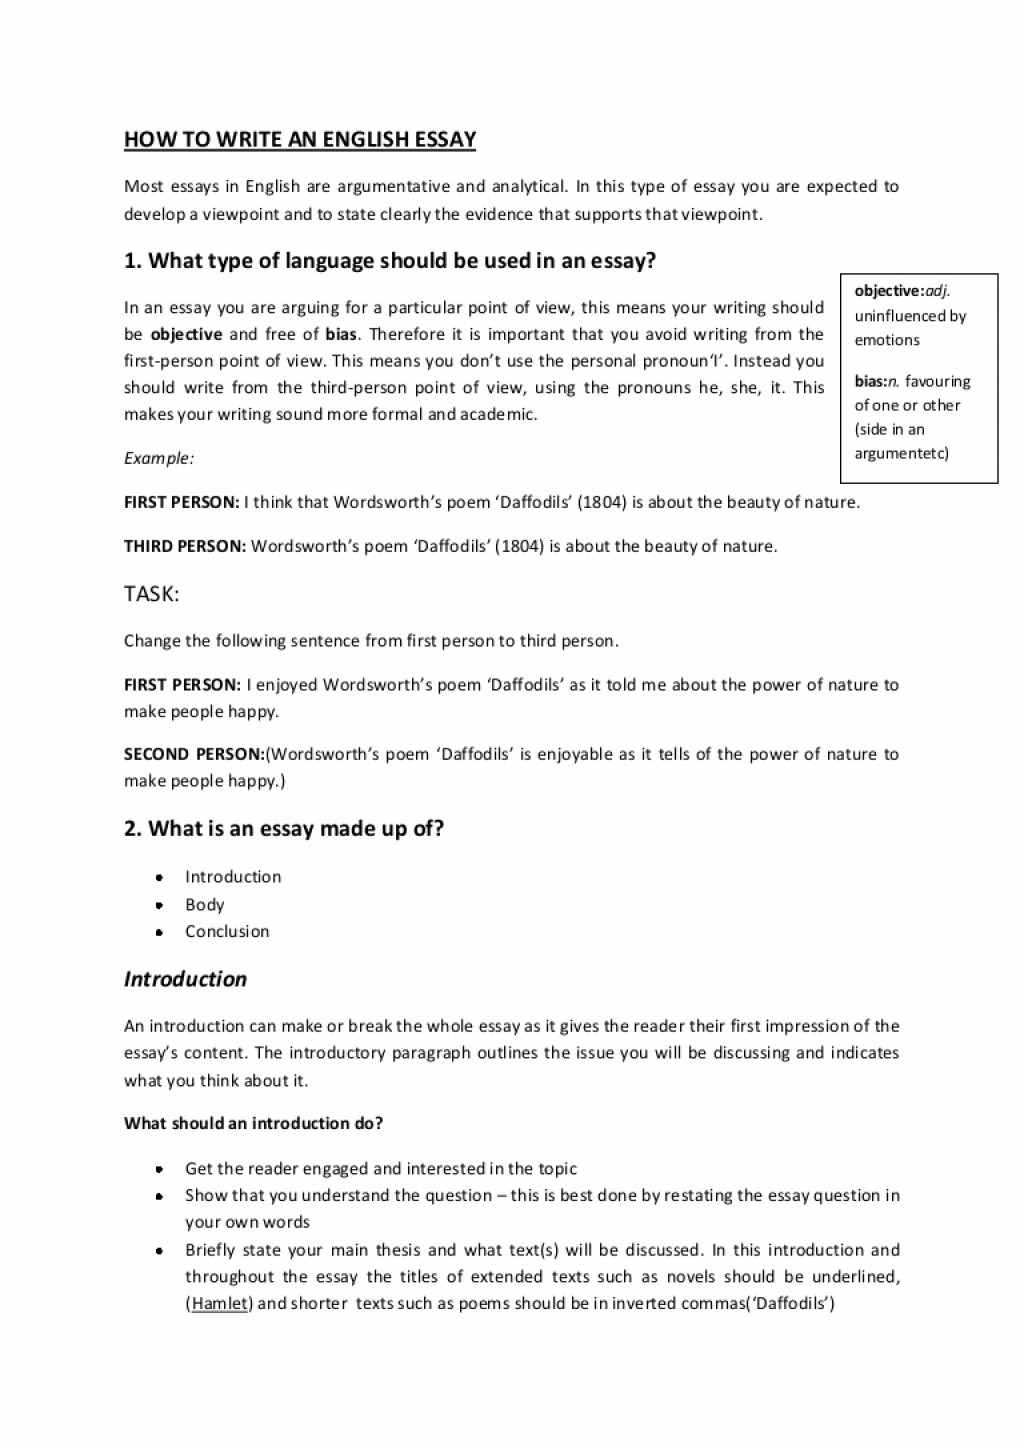 012 First Impression Essay Howtowriteanenglishessaybooklet Phpapp01 Thumbnail Awesome Opinion Making A Good Outline Large